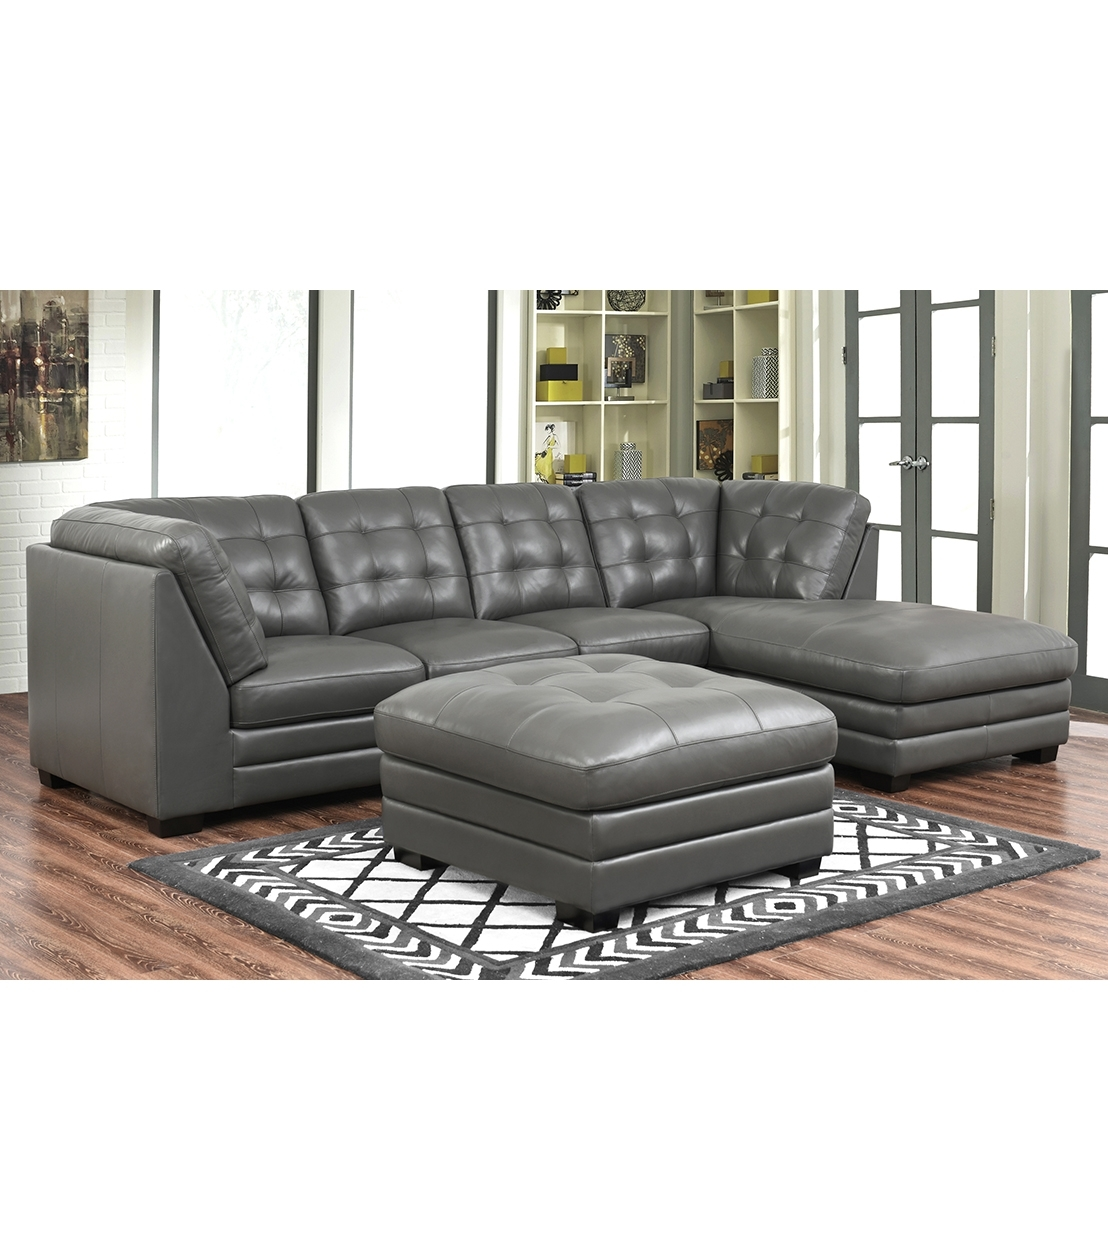 Sectionals : Lawrence Top Grain Leather Sectional With Ottoman inside Leather Sectionals With Ottoman (Image 14 of 15)